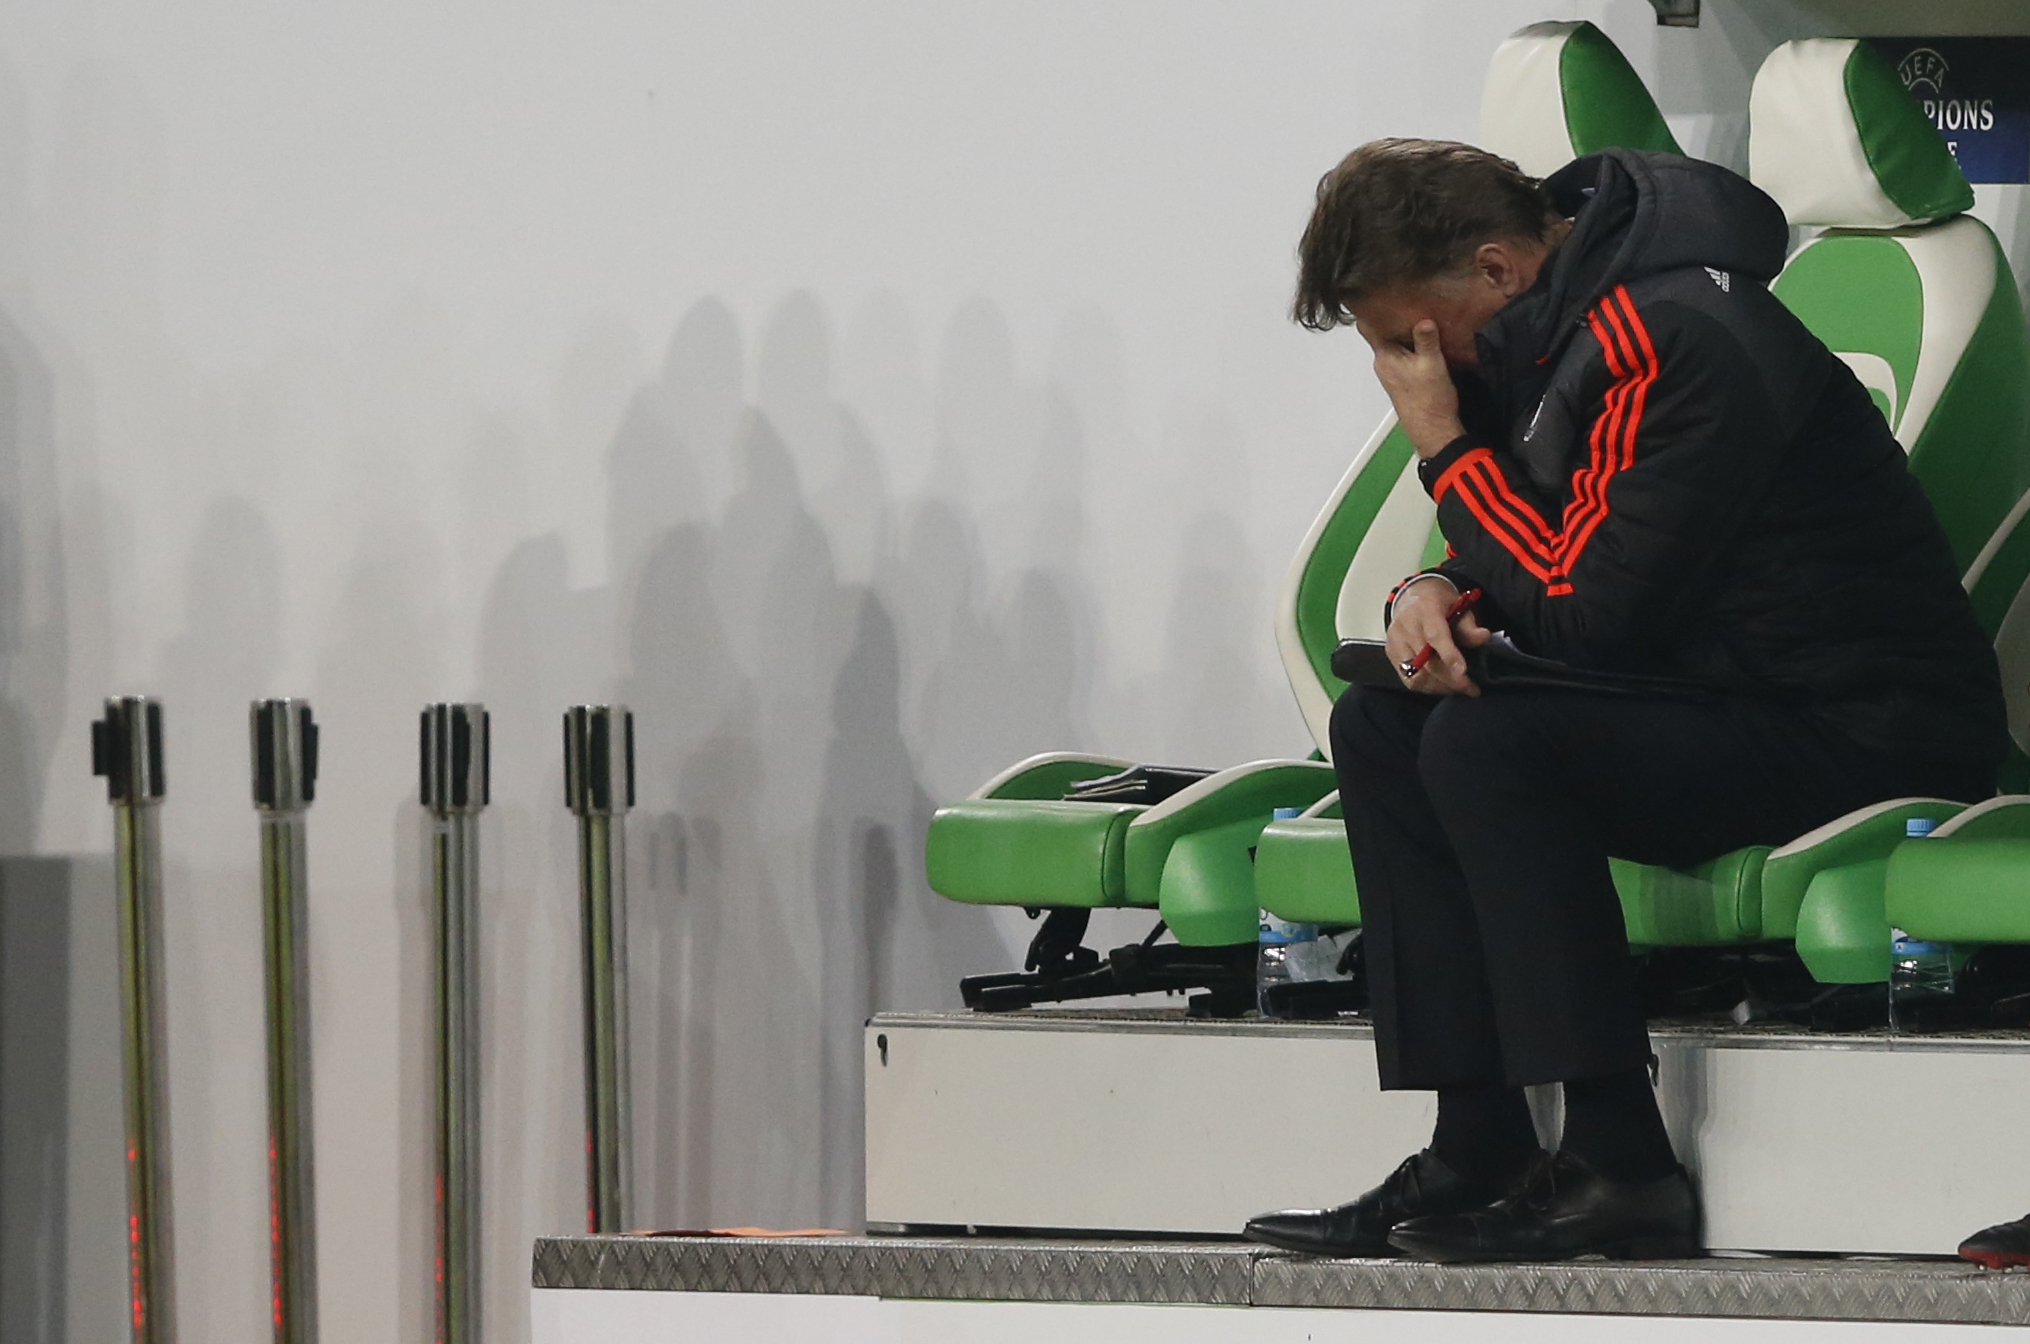 Manchester United manager Louis van Gaal looks dejected during UEFA Champions League game against VFL Wolfsburg on Tuesday, December 8, 2015. Photo: Reuters